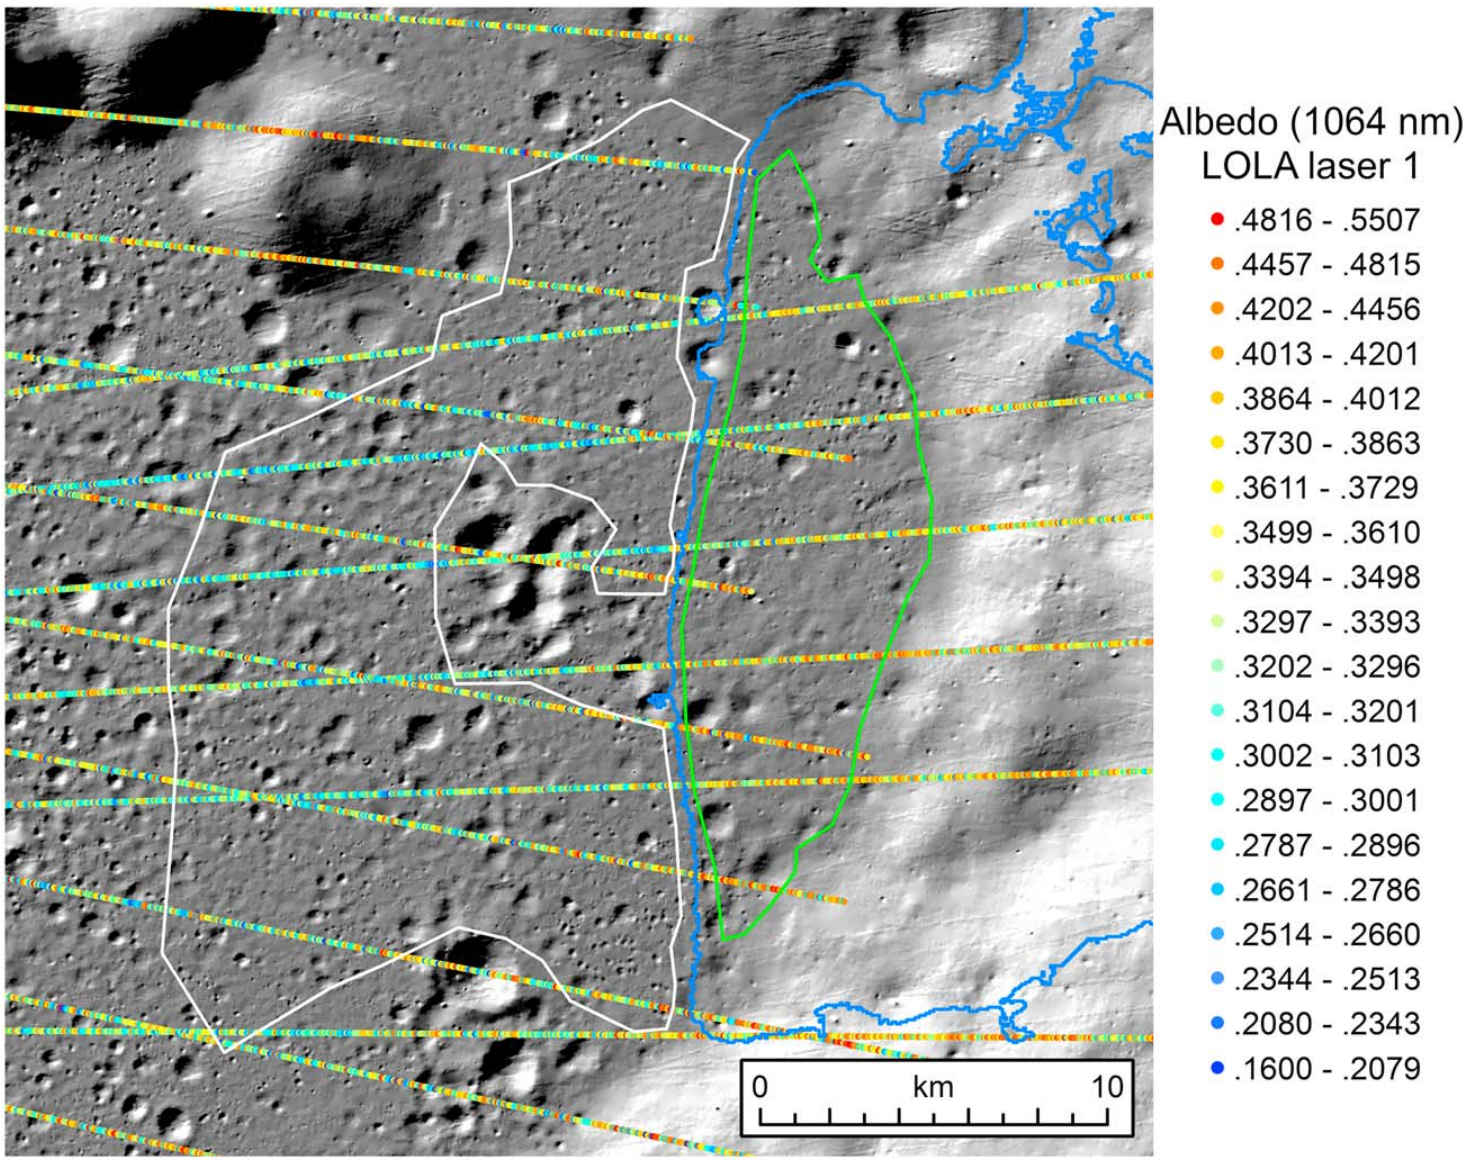 Measurements from LOLA combine to show changes in terrain reflectance. The LOLA tracks increase in reflectance as they pass over the flat PSR (green polygon), and decrease reflectance over the adjacent non-PSR (white polygon). Credit: Qiao et al., 2019, Figure 2.